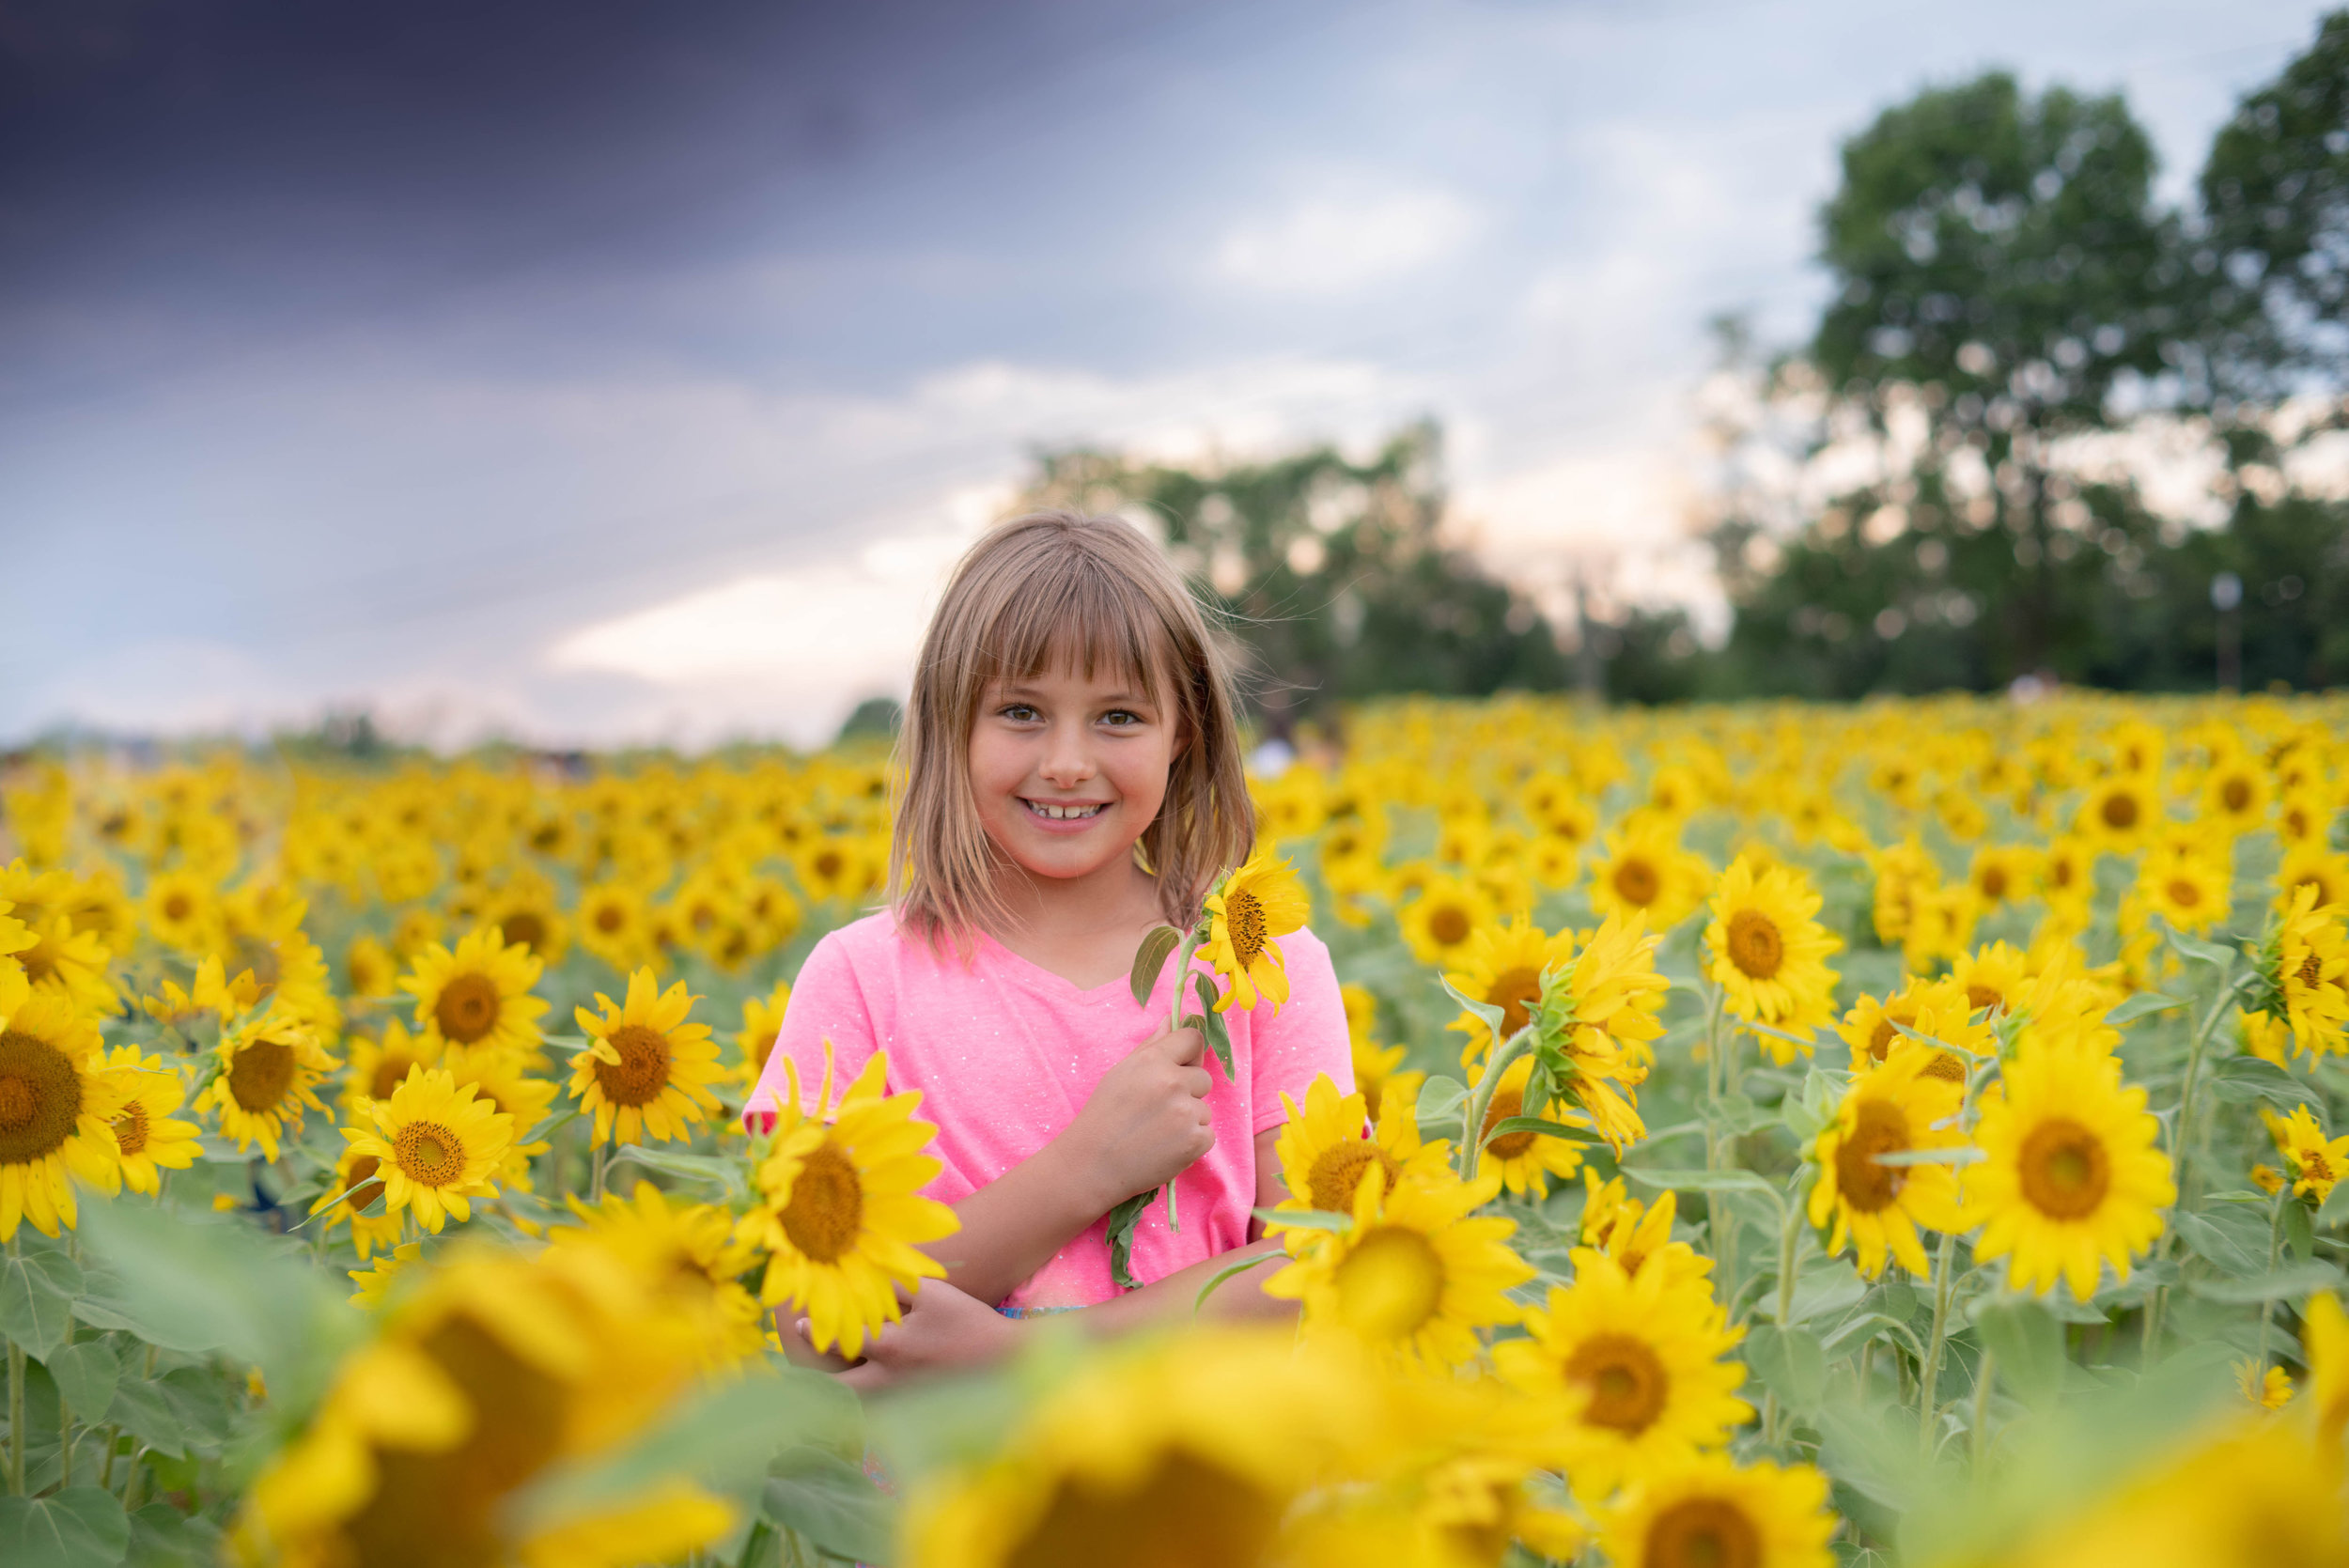 sunflowers-8.jpg